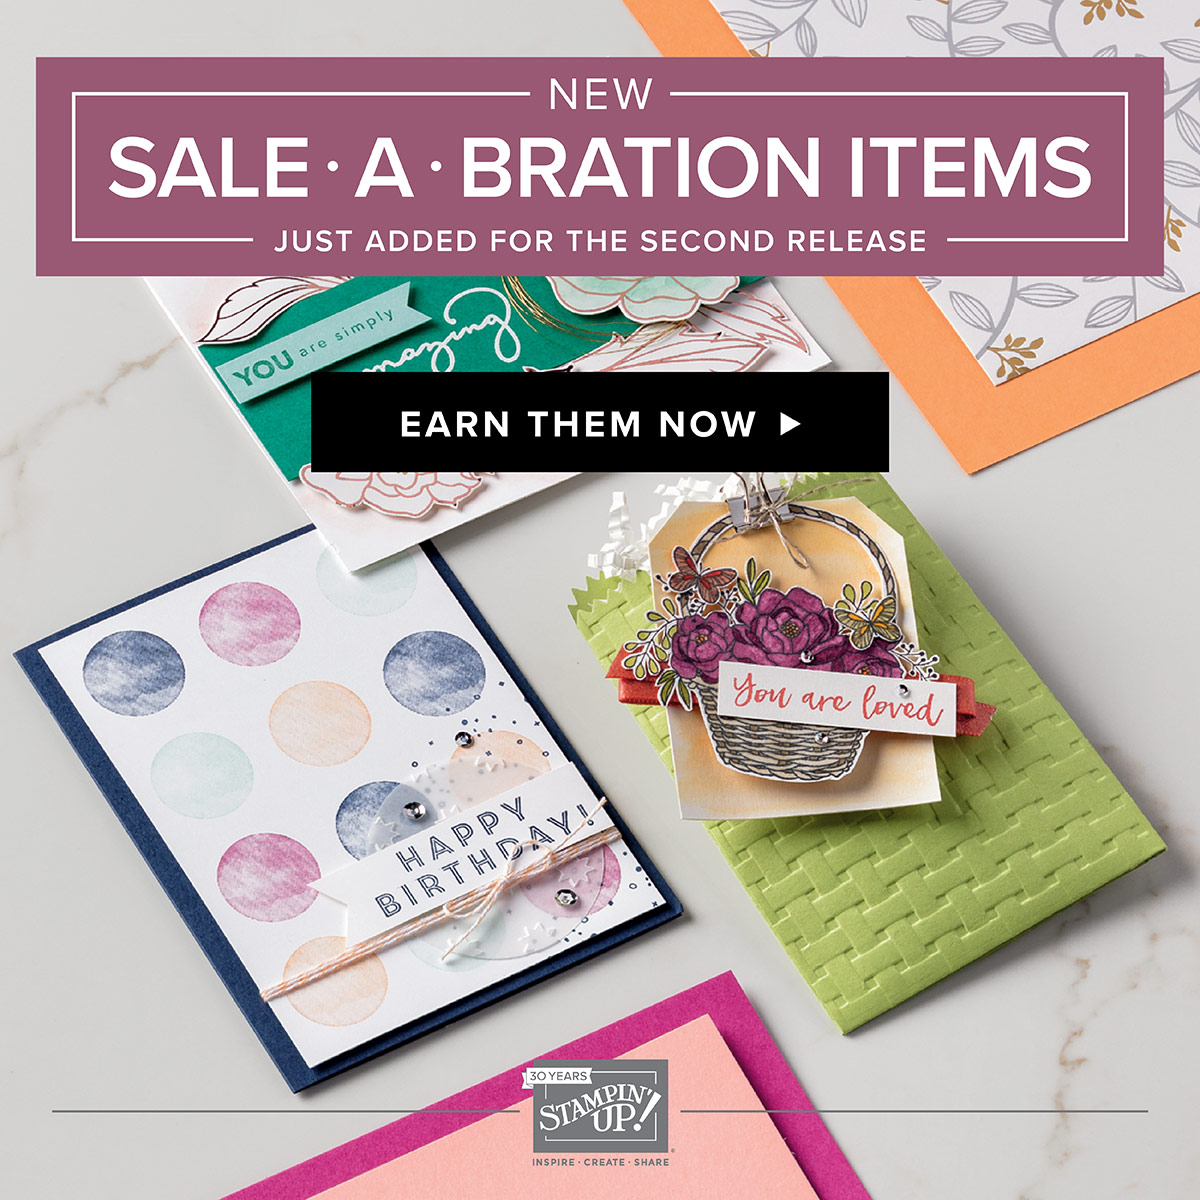 Shop Sale-a-Bration Products (Second Release)